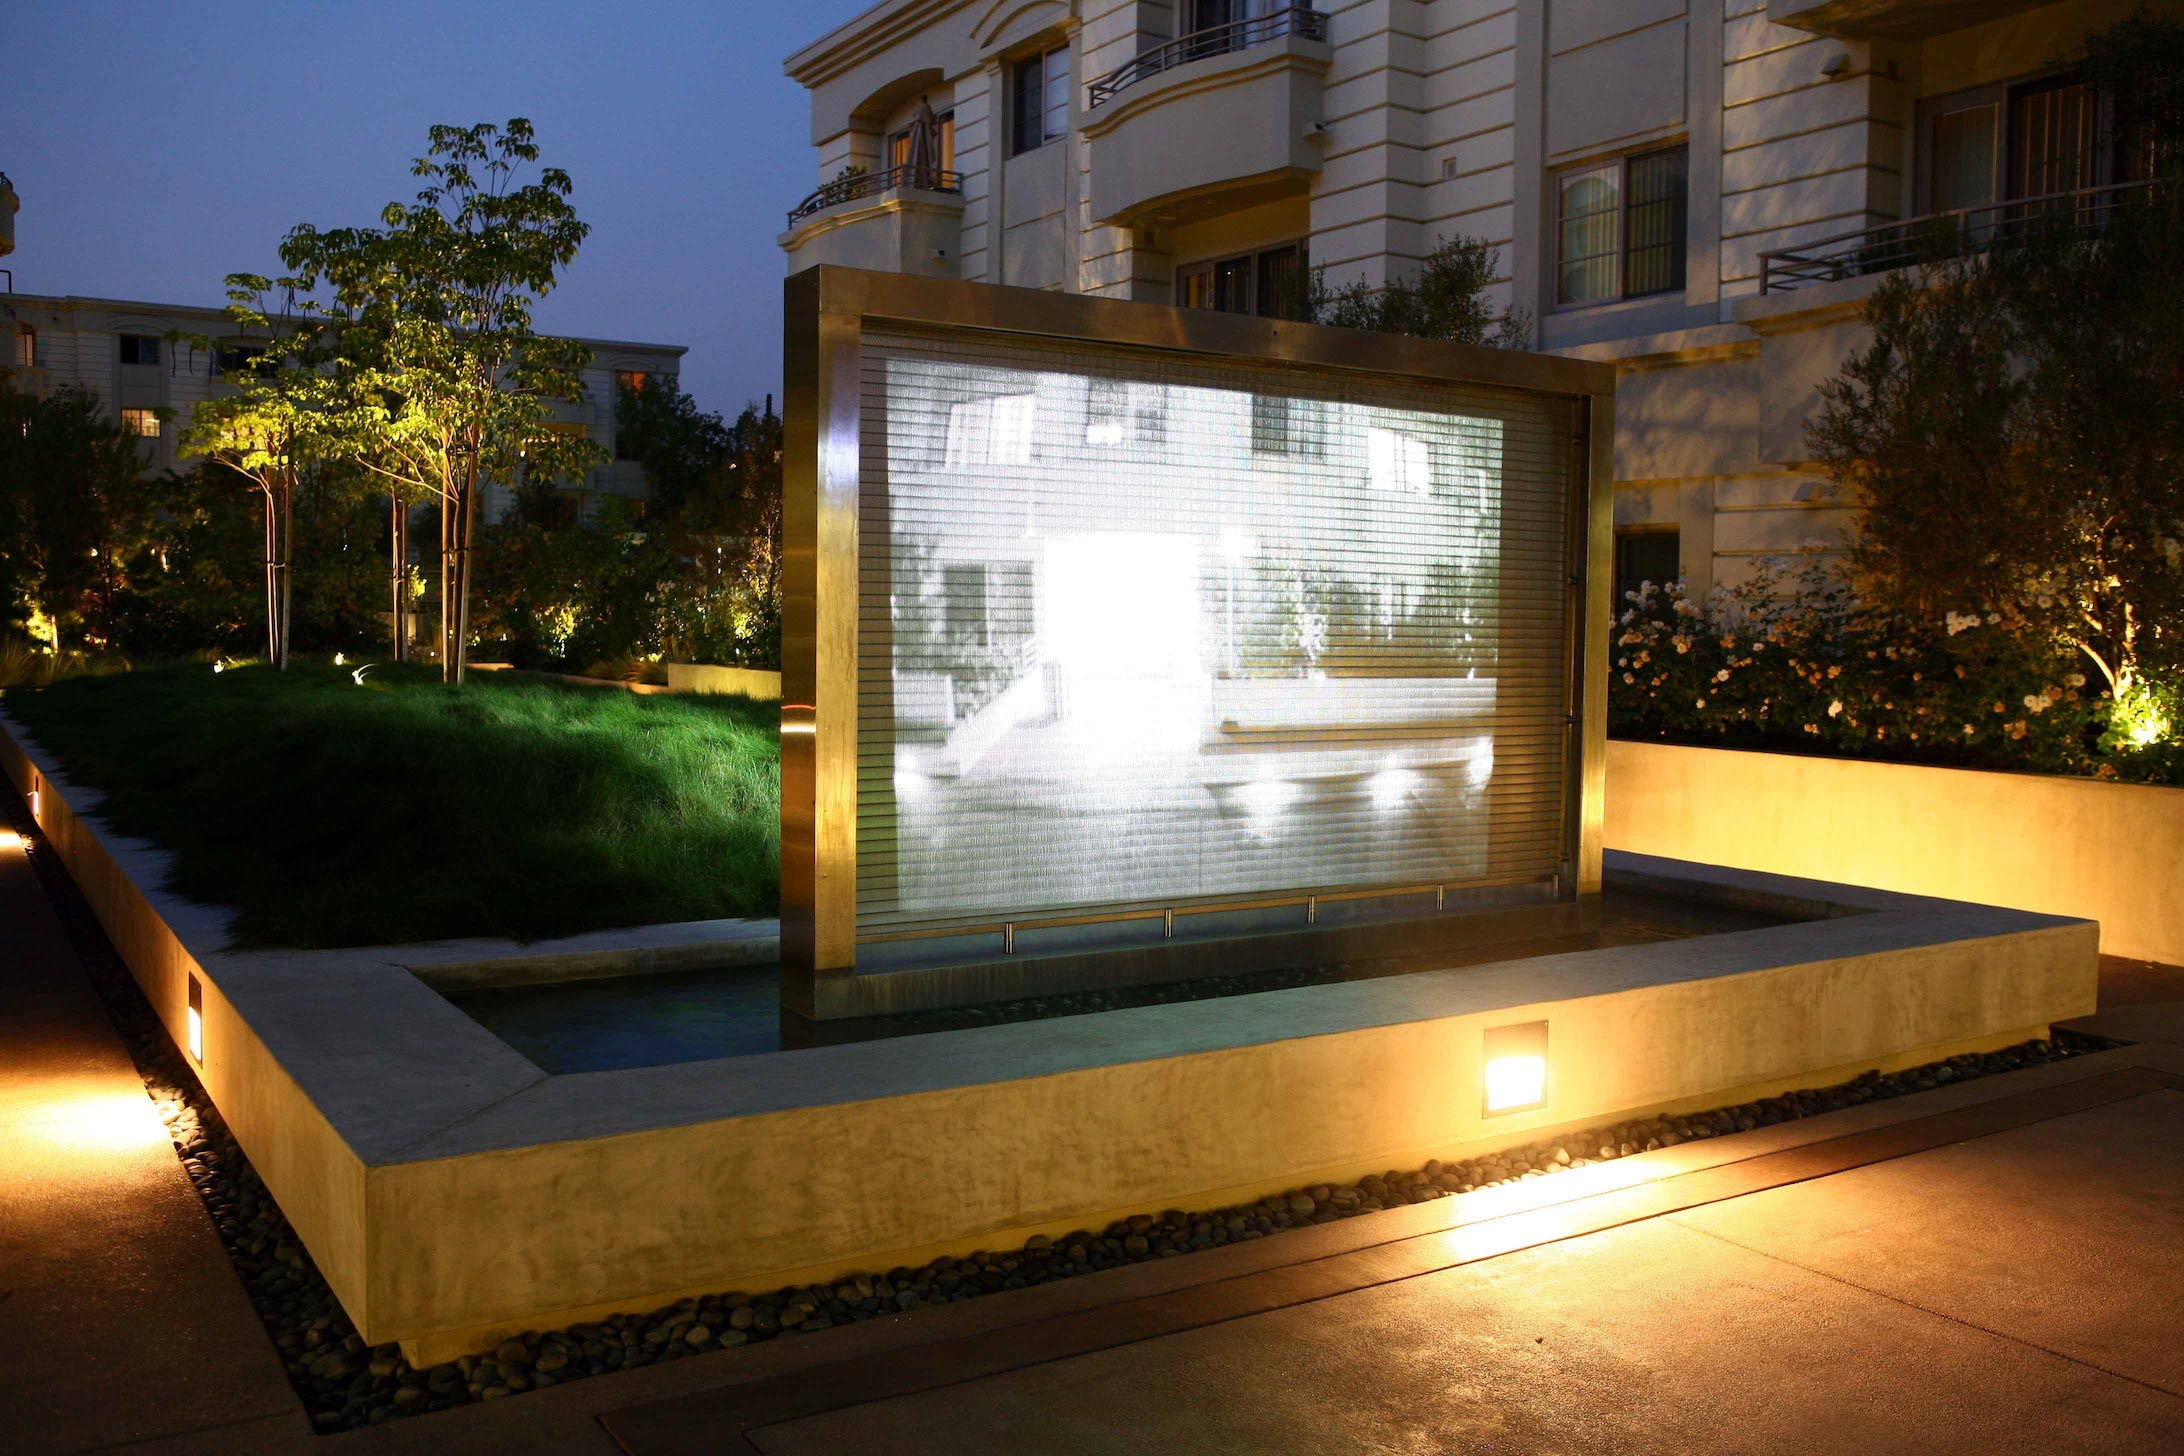 Studio City RGB-Lit Waterfall Sculpture and Projection Screen